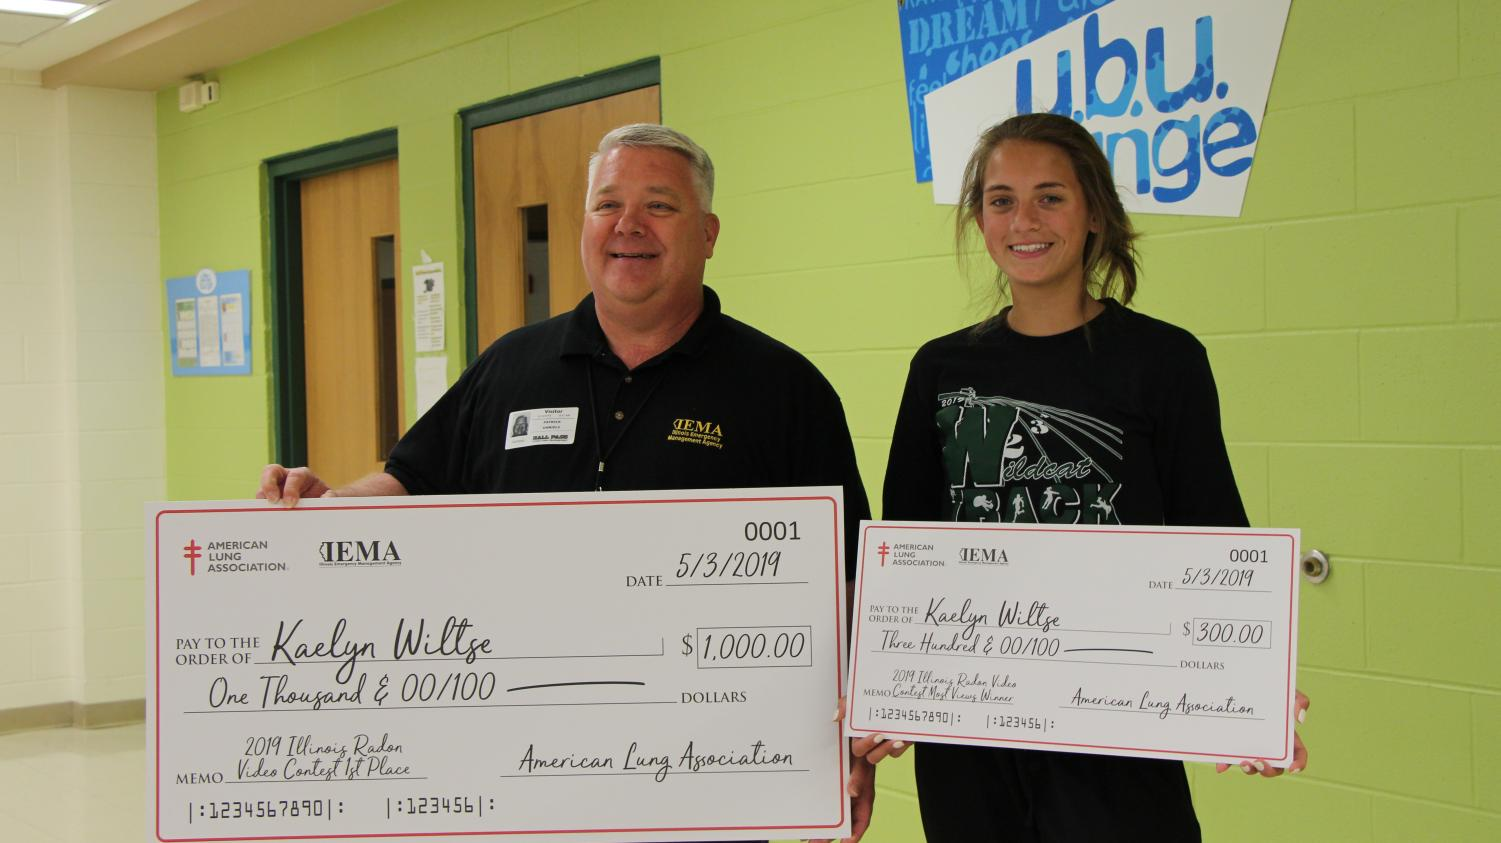 Amaerican Lung Association representative, Pat Daniels (IEMA) holds the $1,000 check for the first place video while senior Kaelyn Wiltze holds the $300 check for most views.